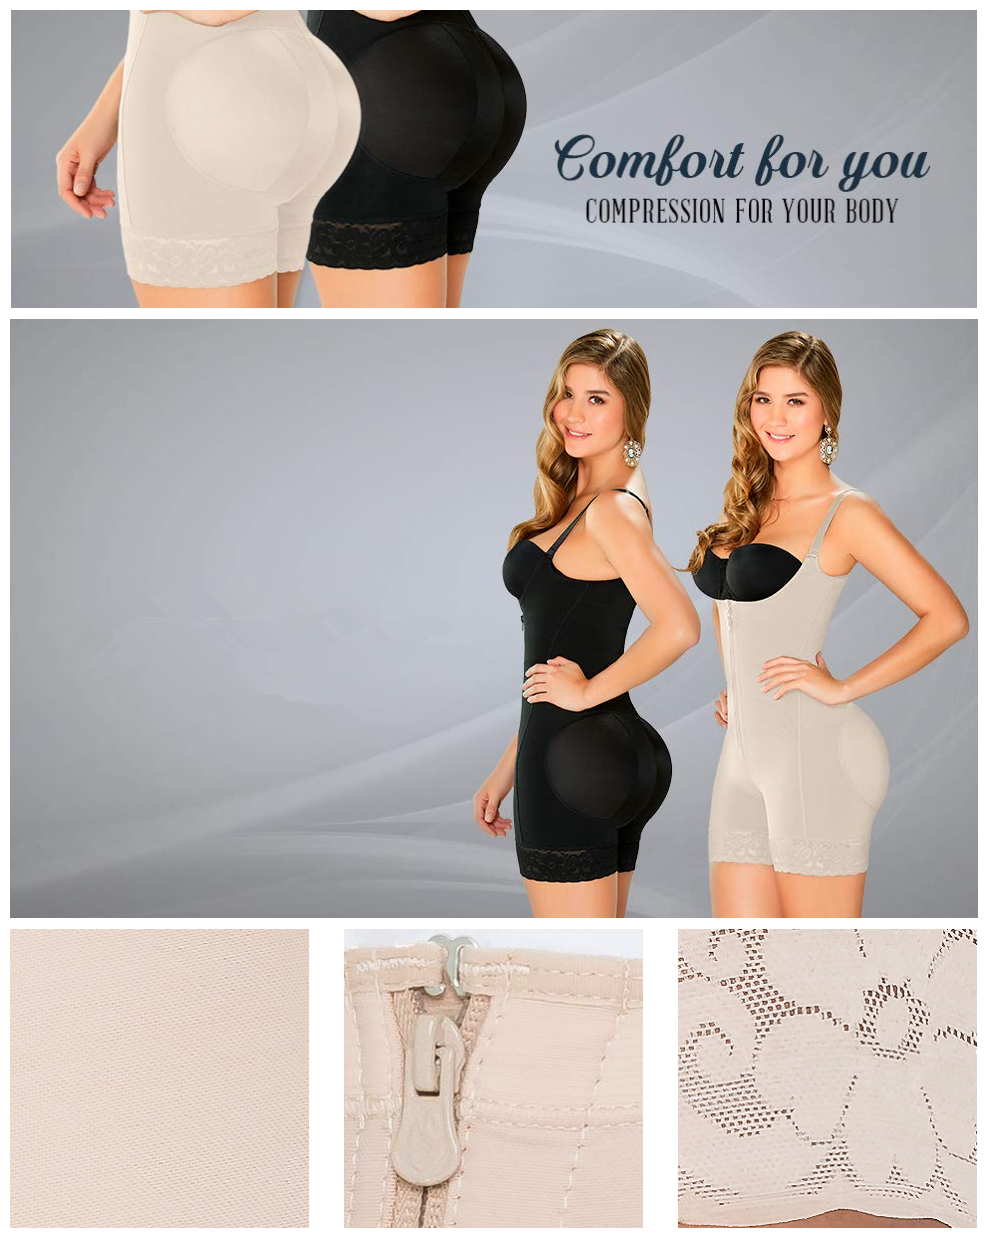 Mulheres Fajas Colombianas Bodysuit Shapewear Tanga Cinto Aberto Busto Firme Controle Shaper Do Corpo